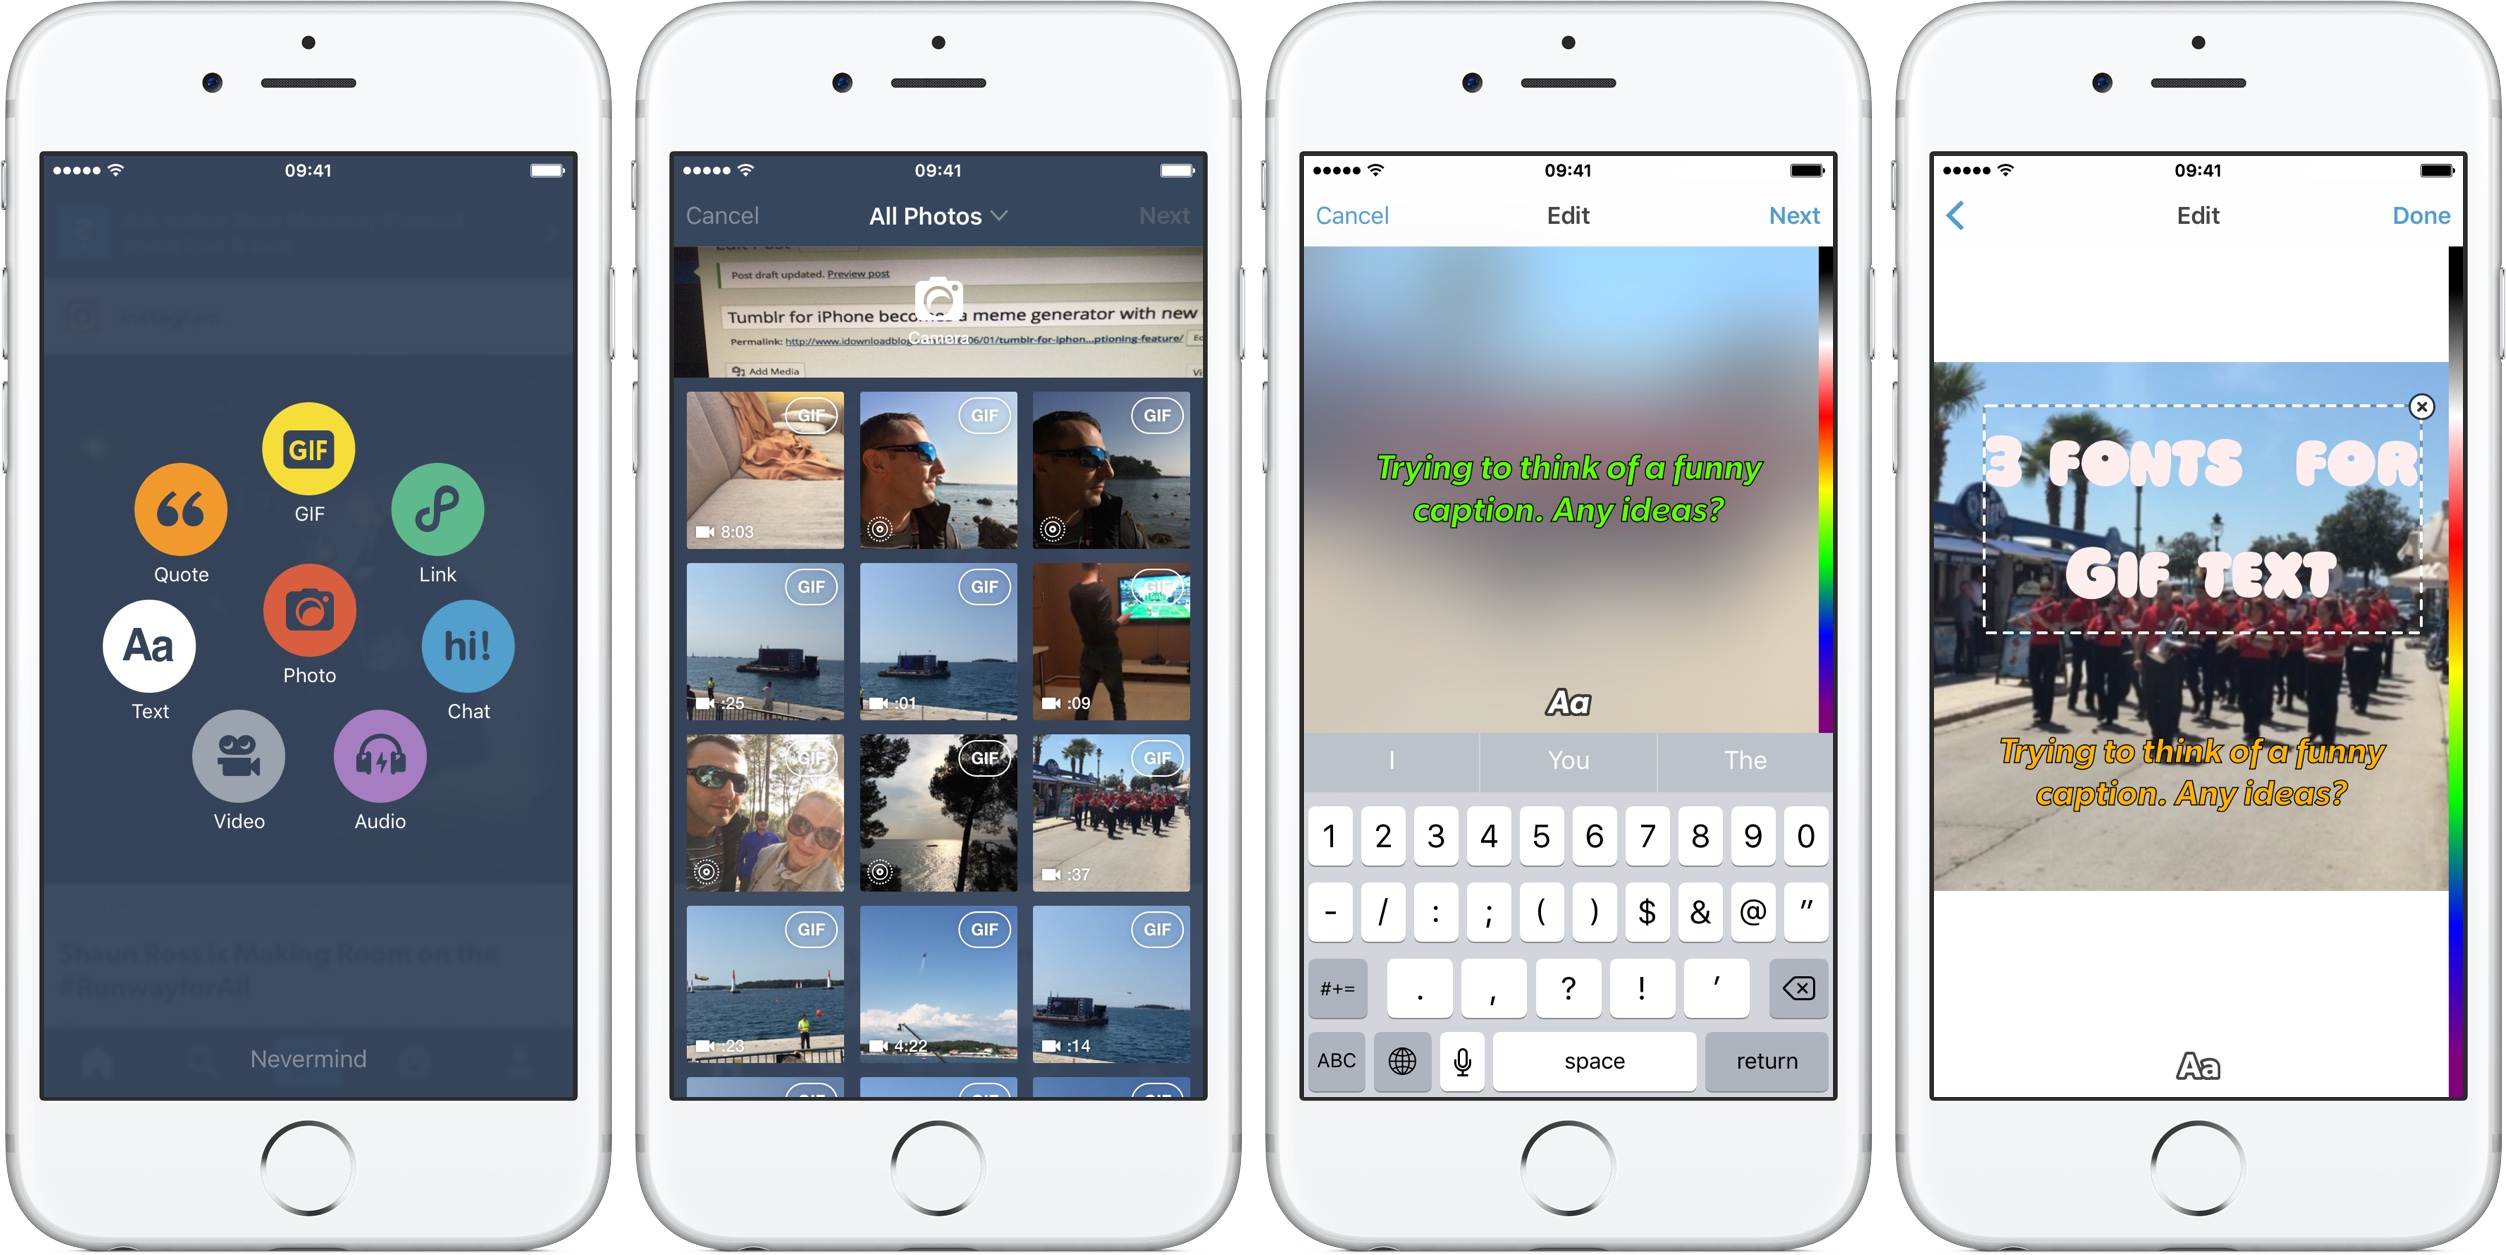 Tumblr 6.1.1. for iOS GIF captions iPhone screenshot 001